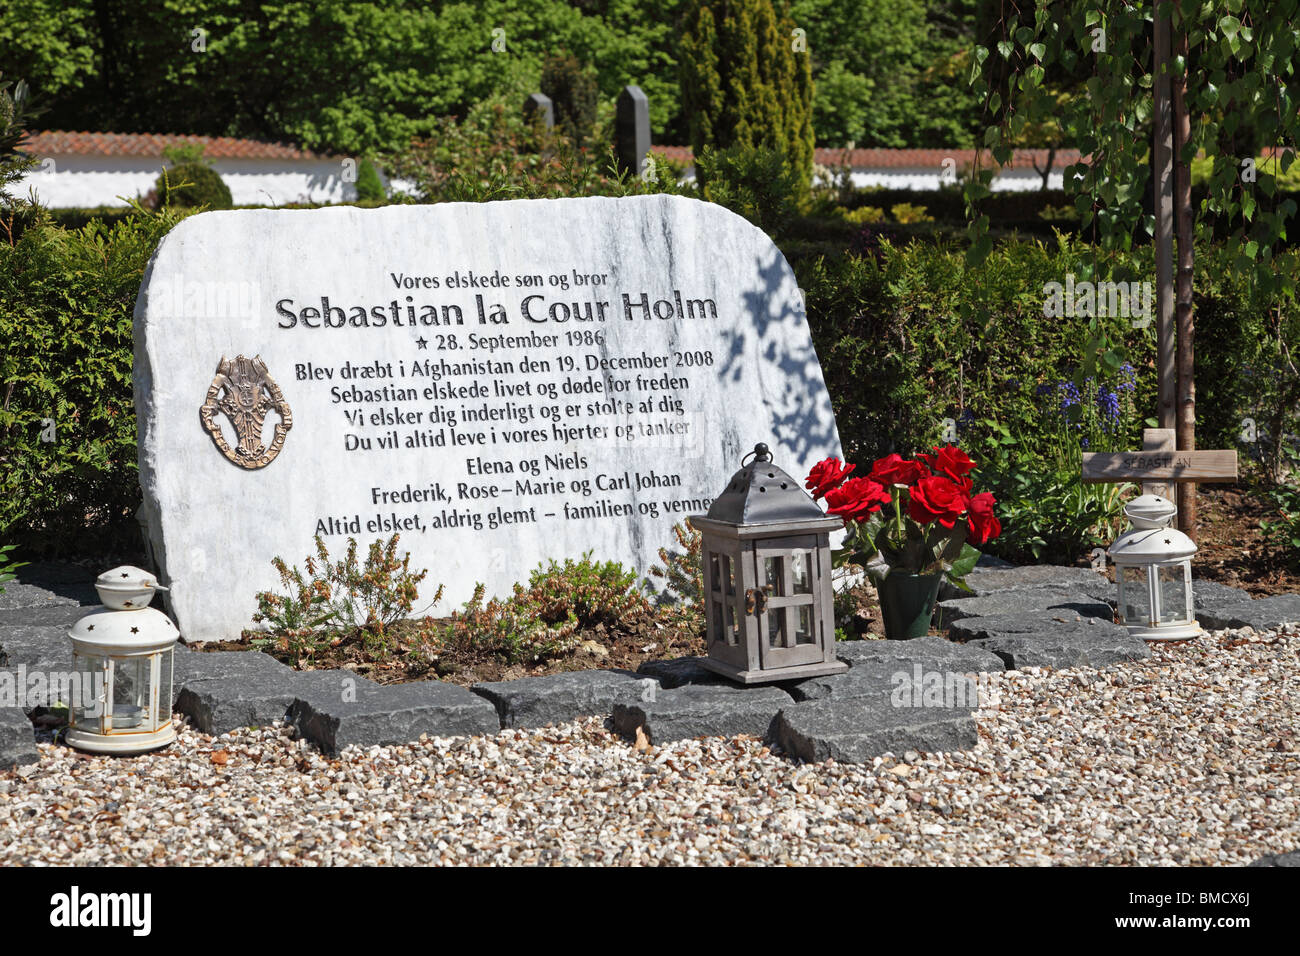 Grave of young Danish soldier fallen in action in Afghanistan at Karlebo Church cemetery, near Copenhagen, Denmark. - Stock Image